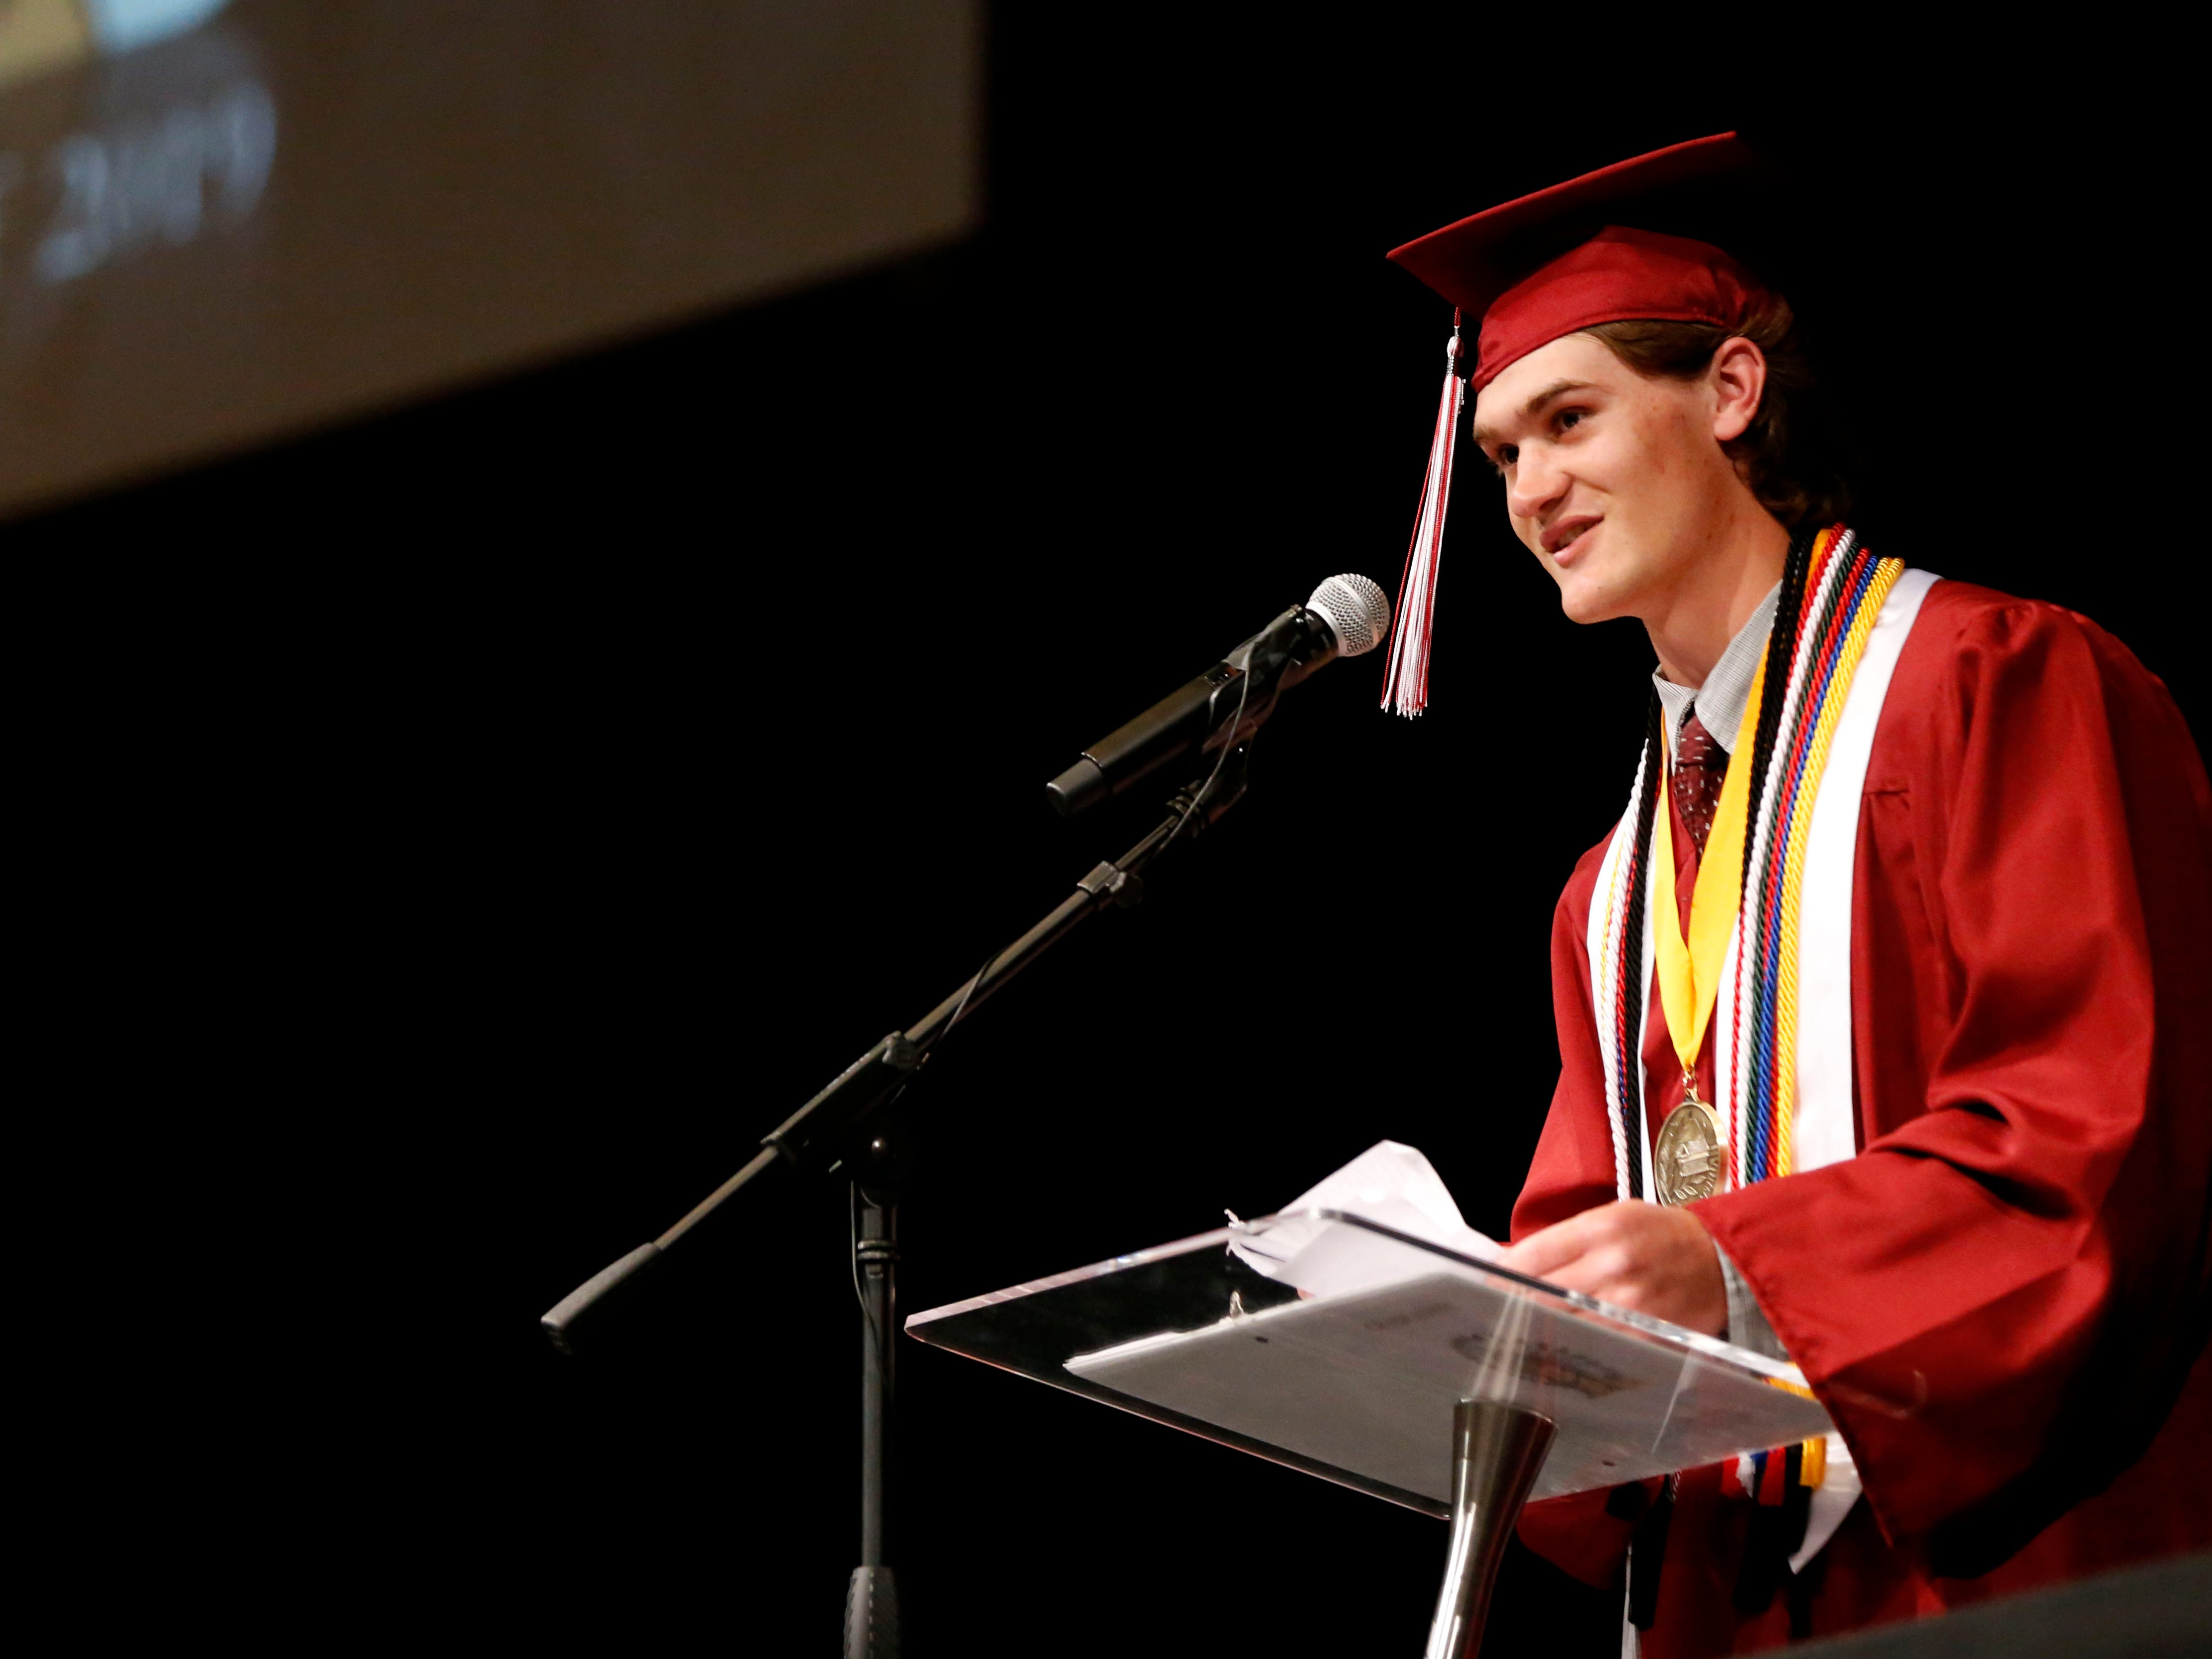 Strafford High School valedictorian Trayson Lawer gives a speech during the Strafford High School Commencement Ceremony at High Street Baptist Church on Thursday, May 9, 2019.